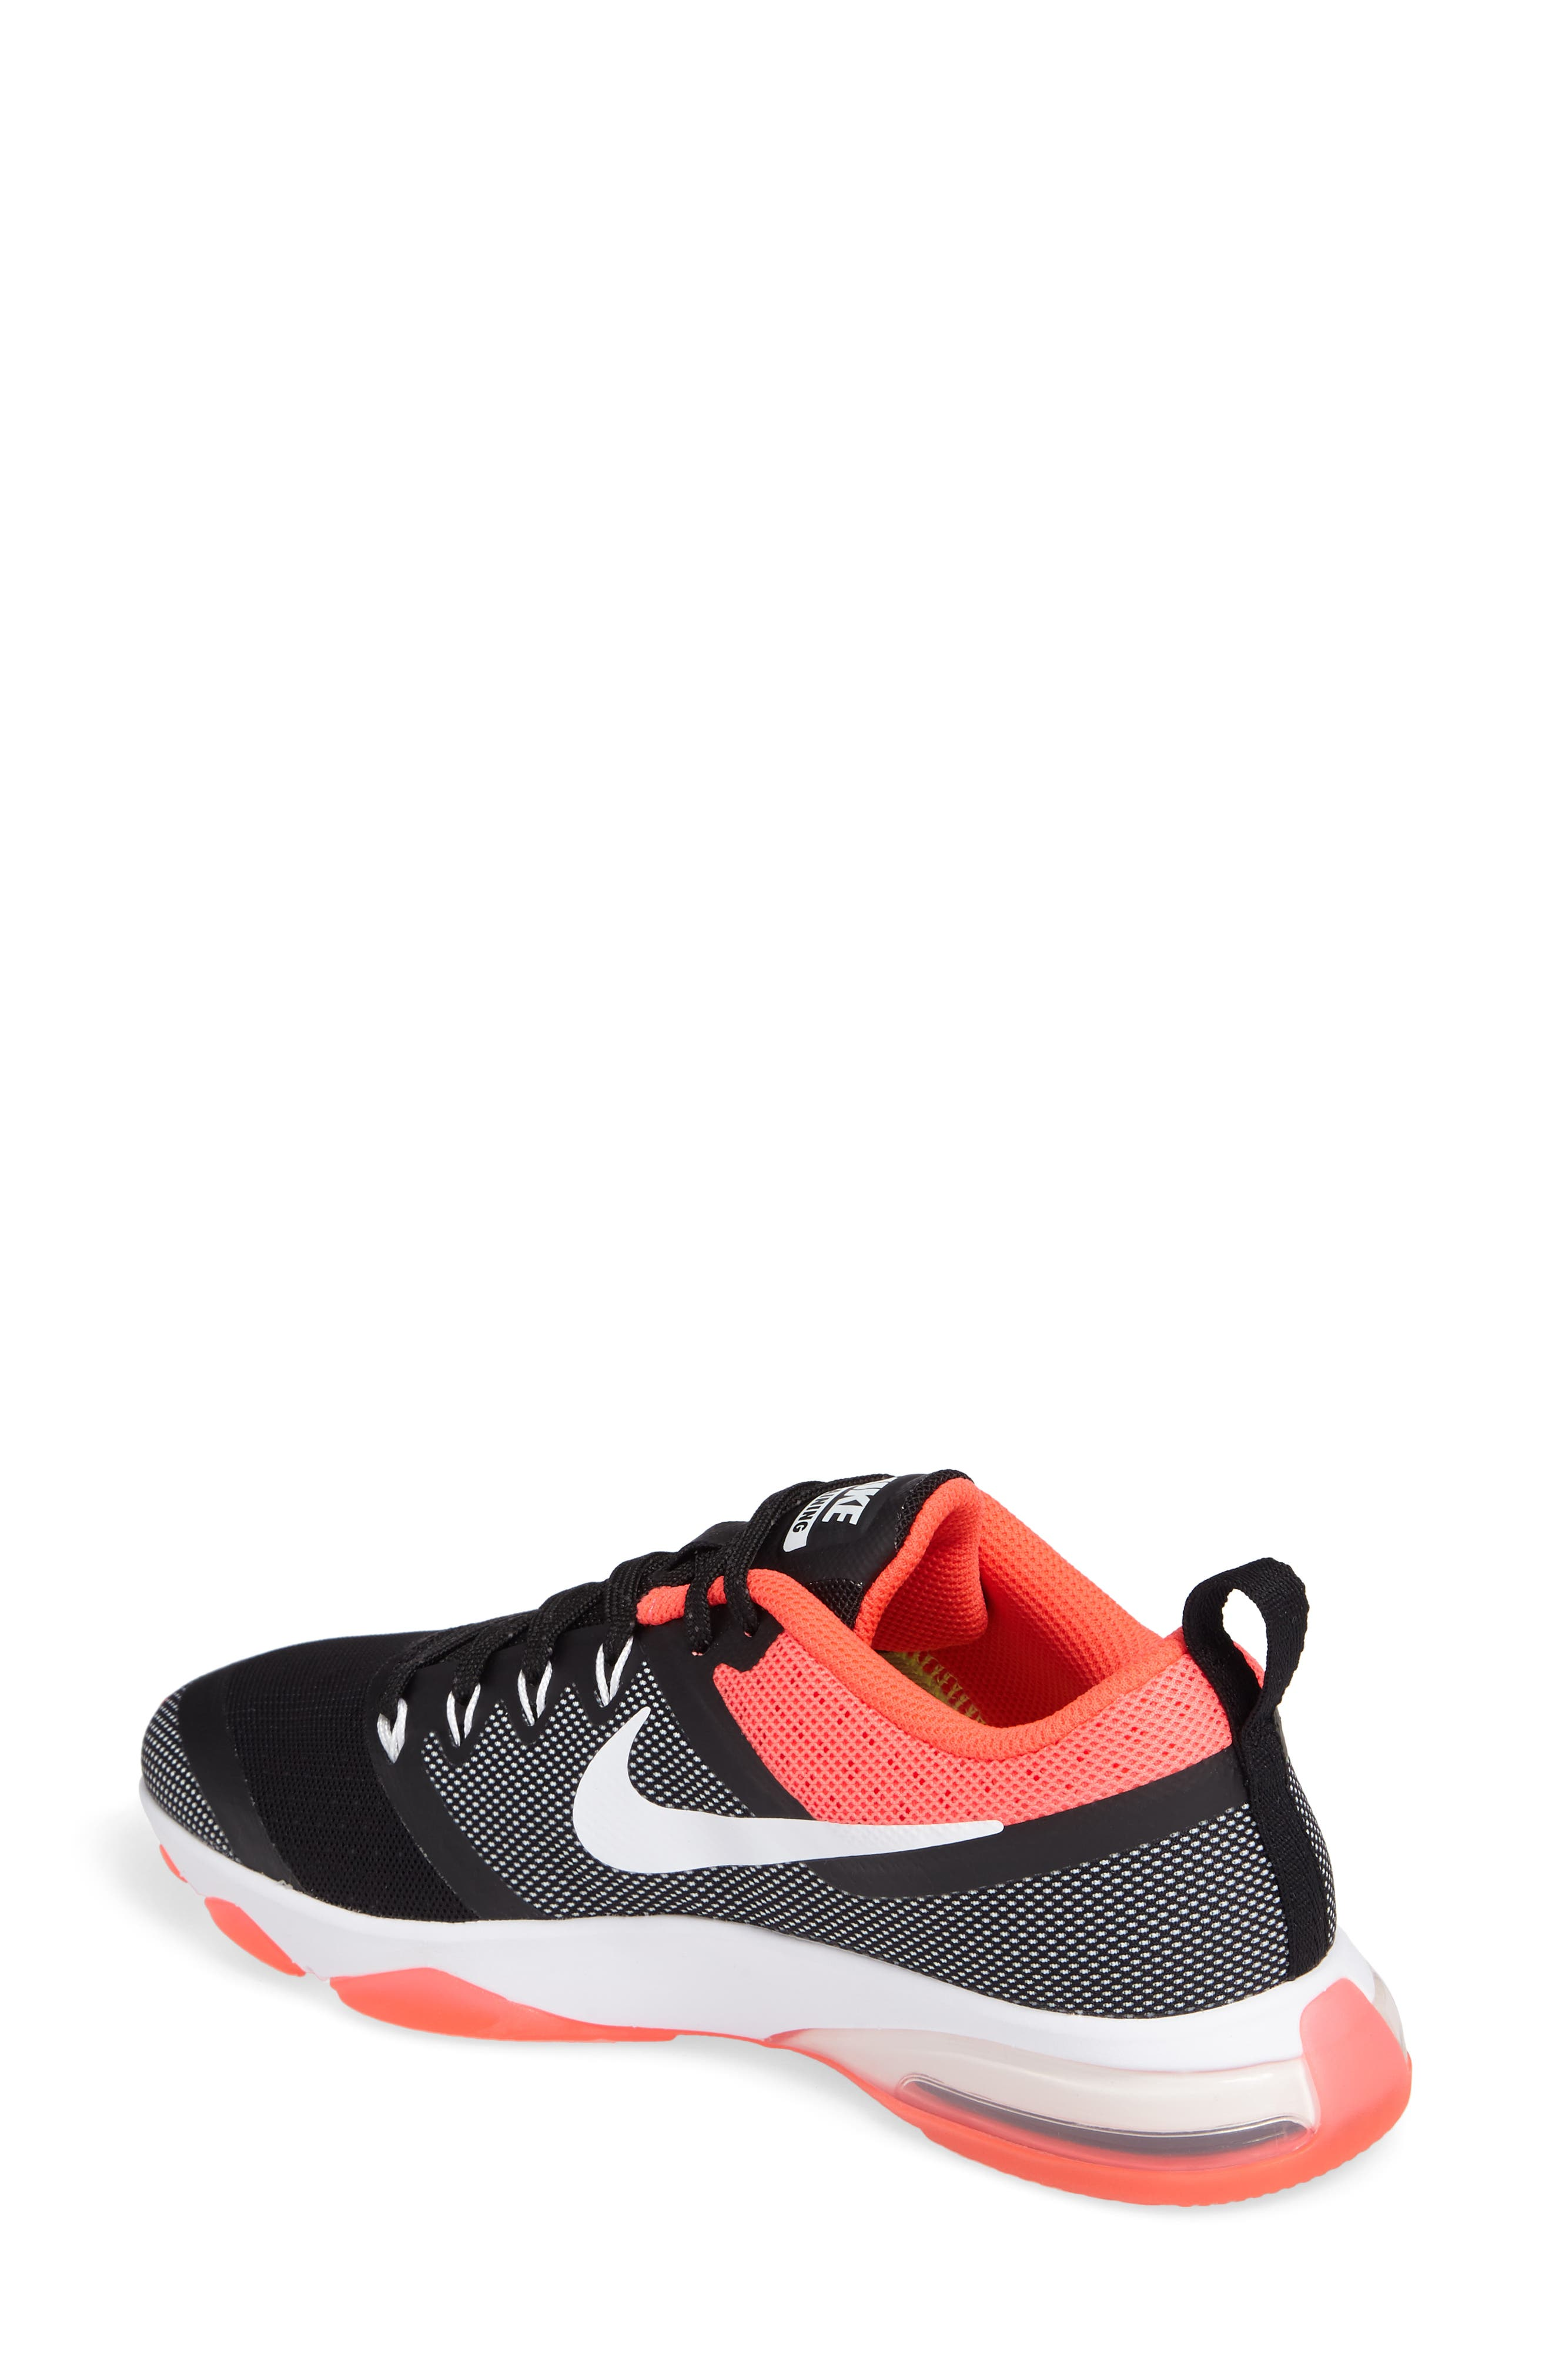 Air Zoom Fitness Training Shoe,                             Alternate thumbnail 2, color,                             Black/ White/ Solar Red